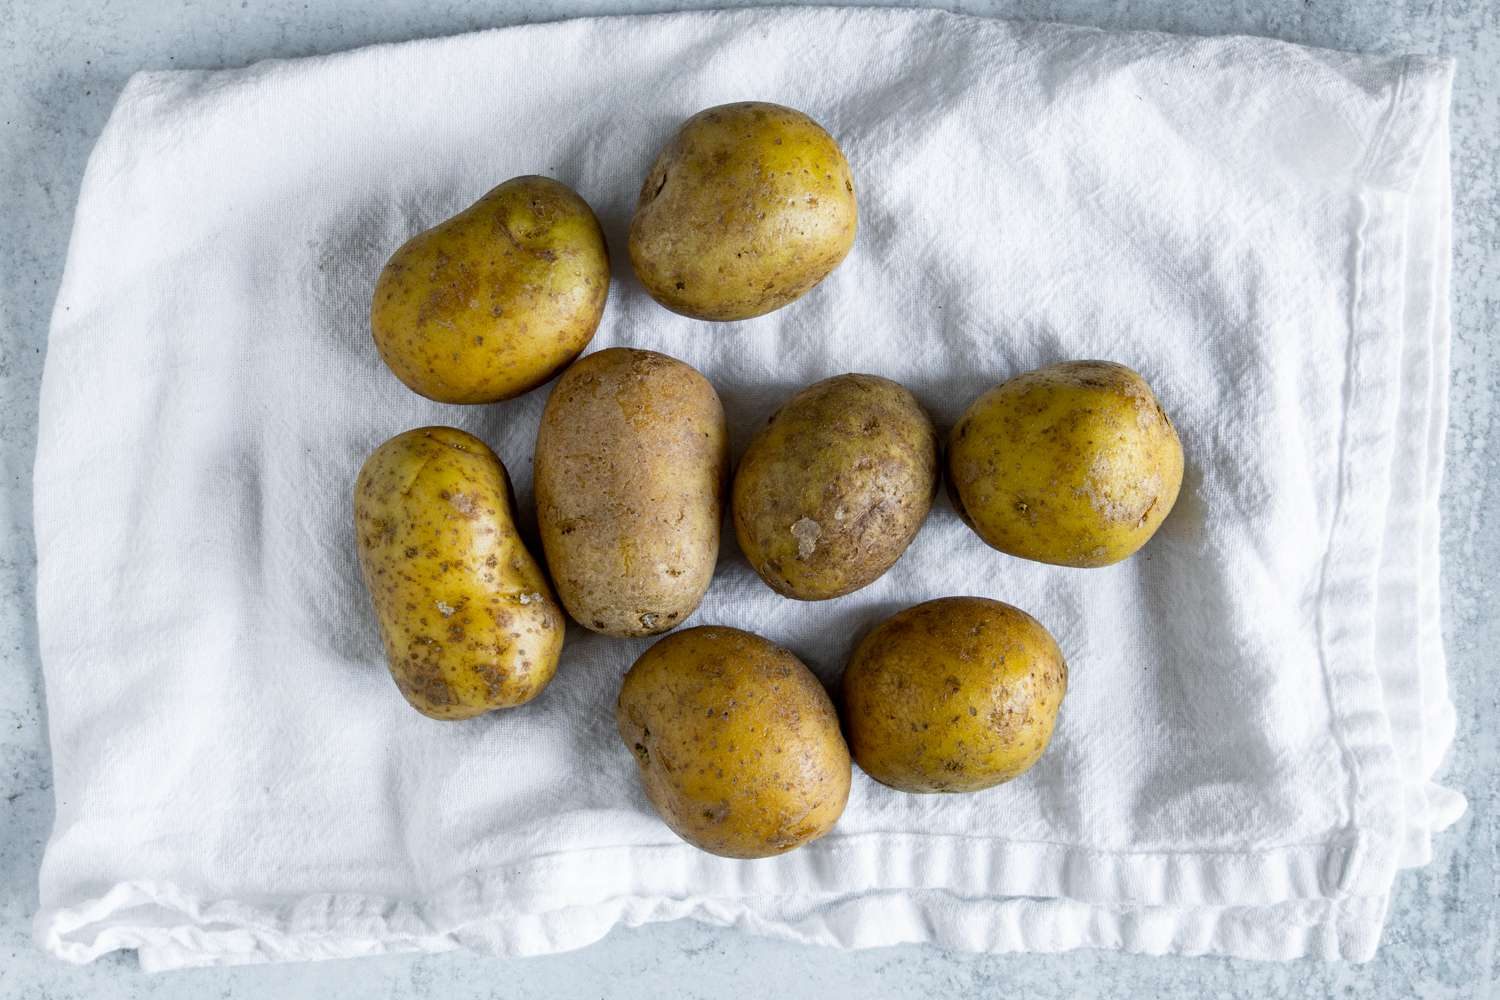 Clean potatoes on a kitchen towel